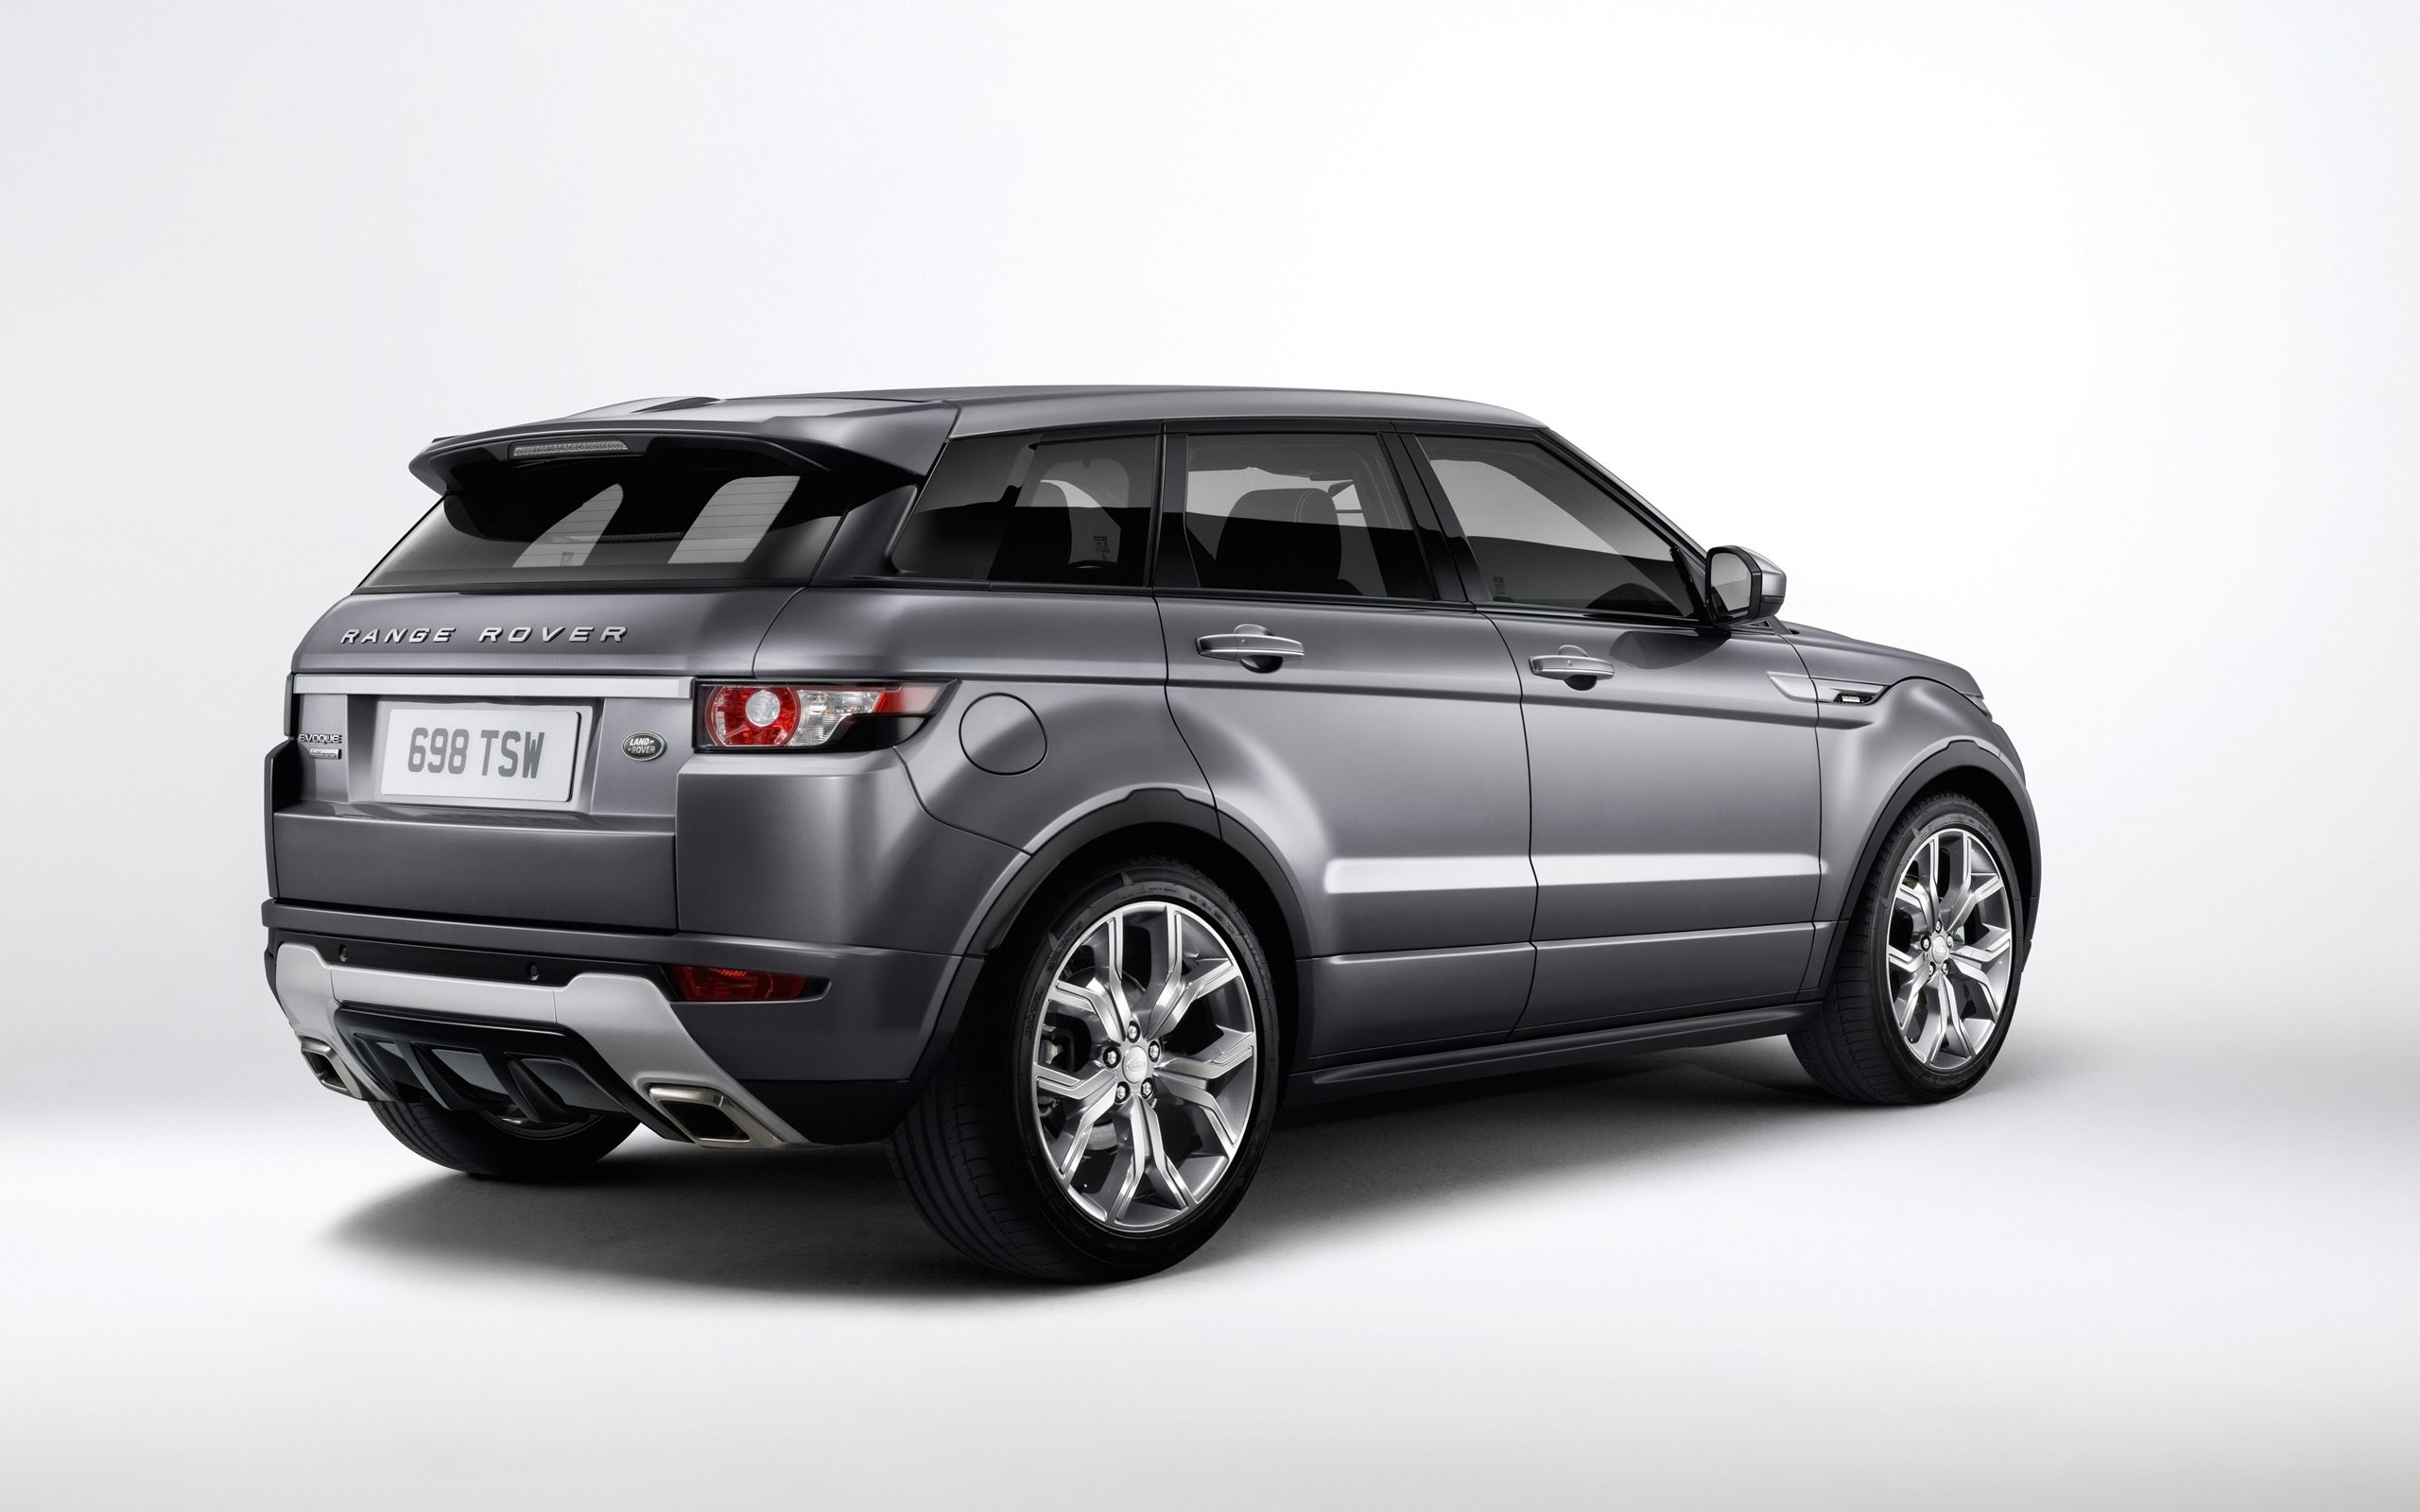 2015 range rover evoque autobiography 2 wallpaper hd car wallpapers id 4091. Black Bedroom Furniture Sets. Home Design Ideas